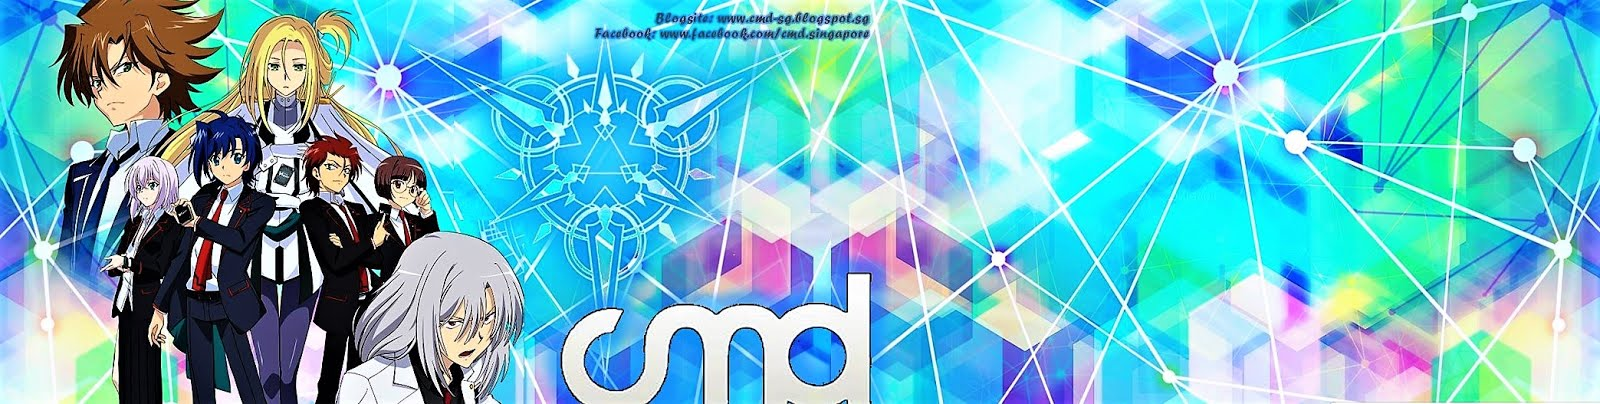 CMD SinGapoЯe (CaЯdFiGht ▪ Mass-Communication ▪ Development)